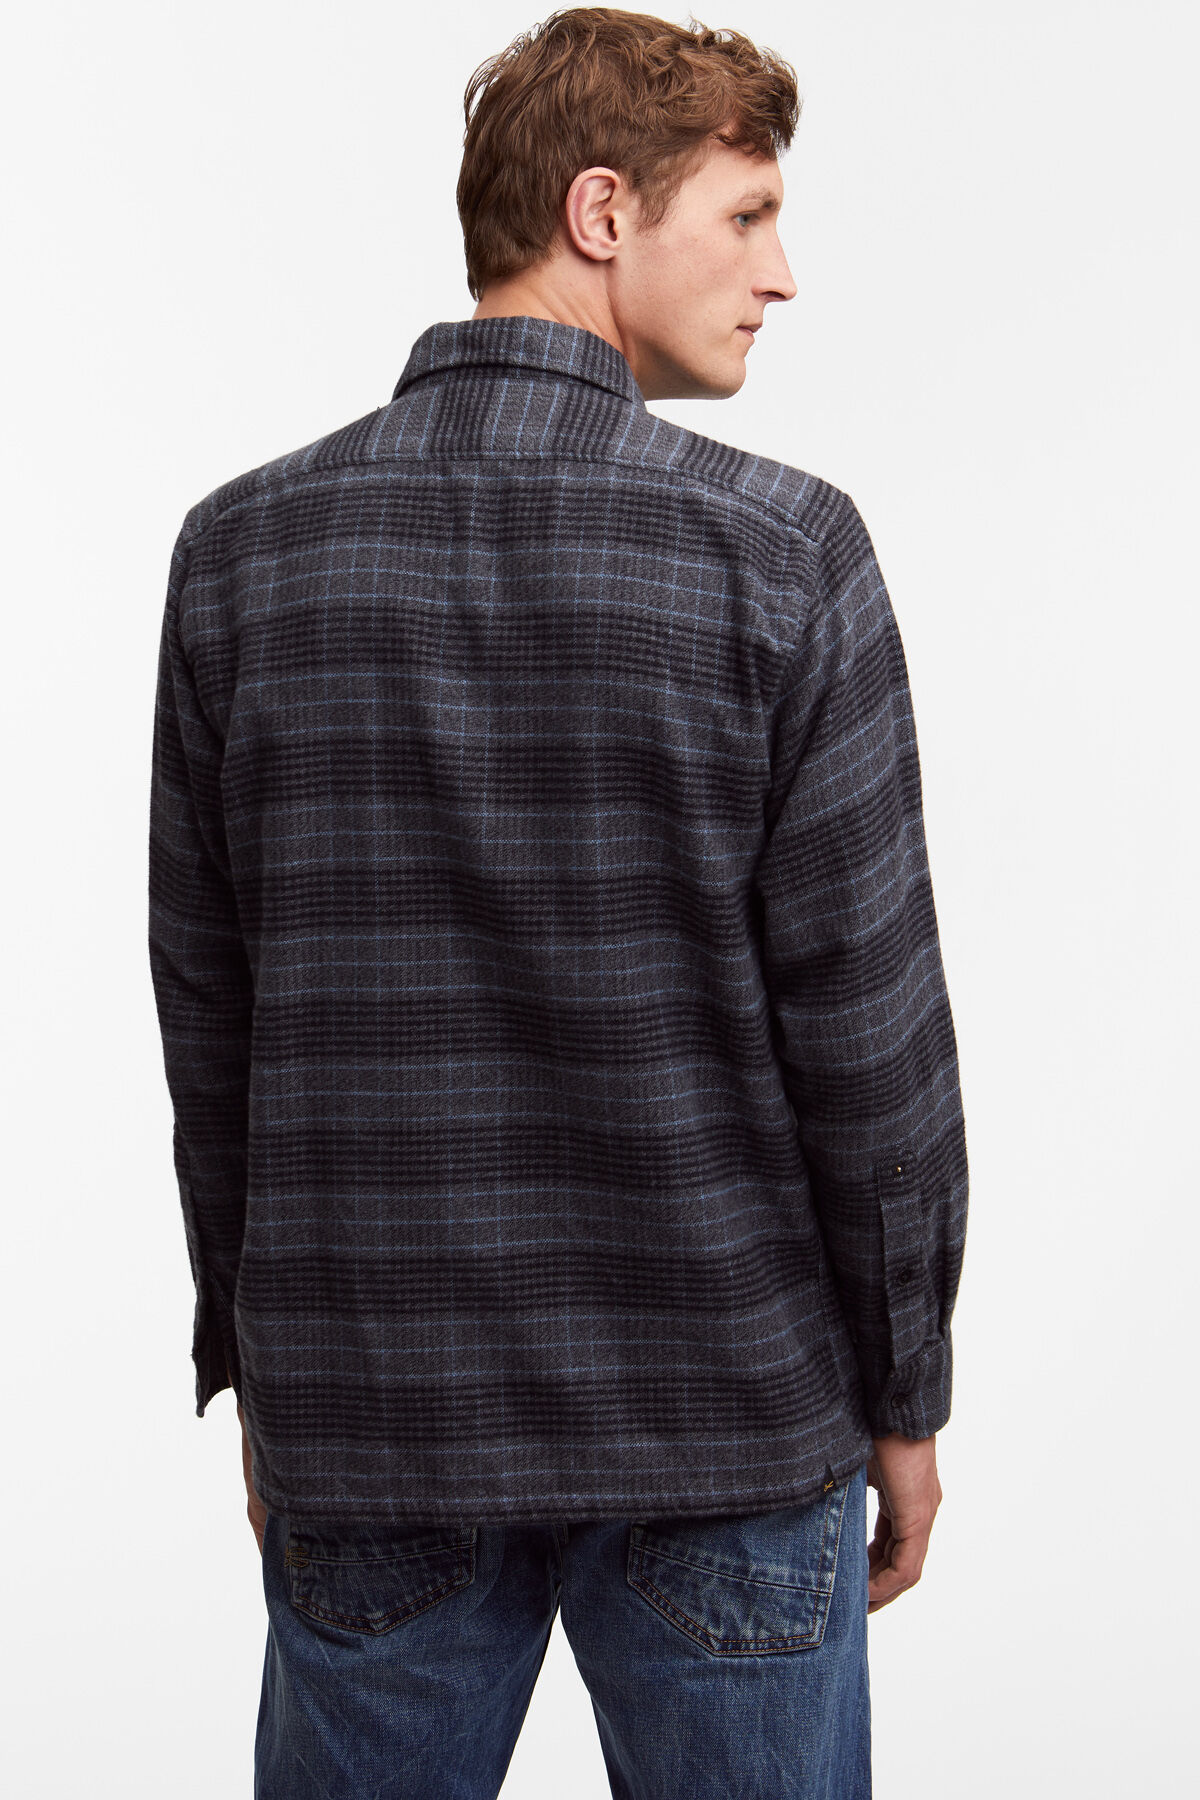 MILITARY CANNON Soft Check Pattern - Boxy Fit